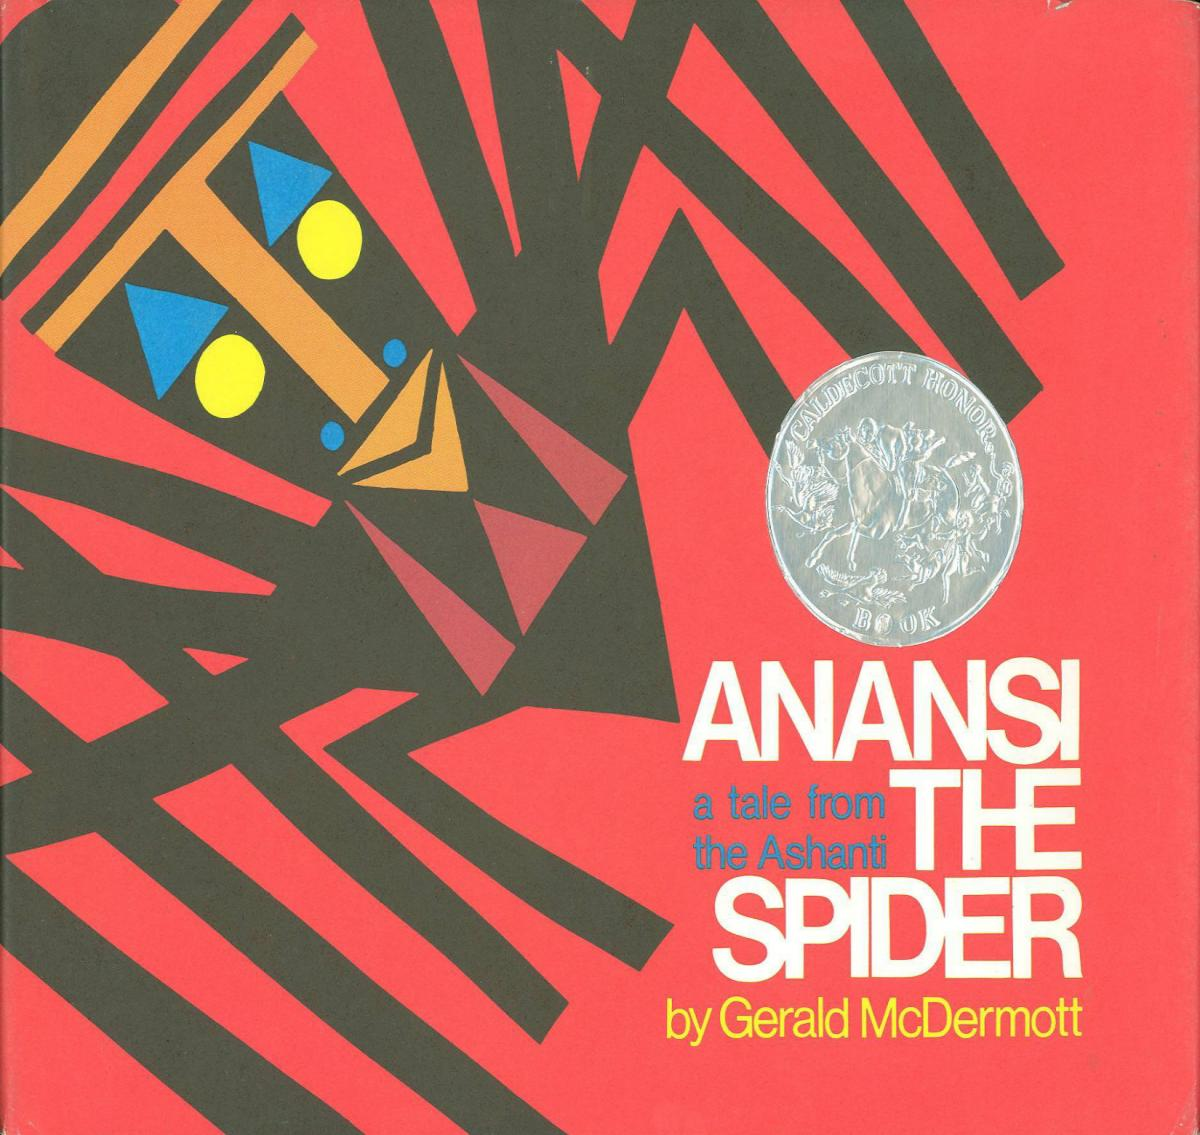 Anansi the Spider: A Tale from the Ashanti - book cover image